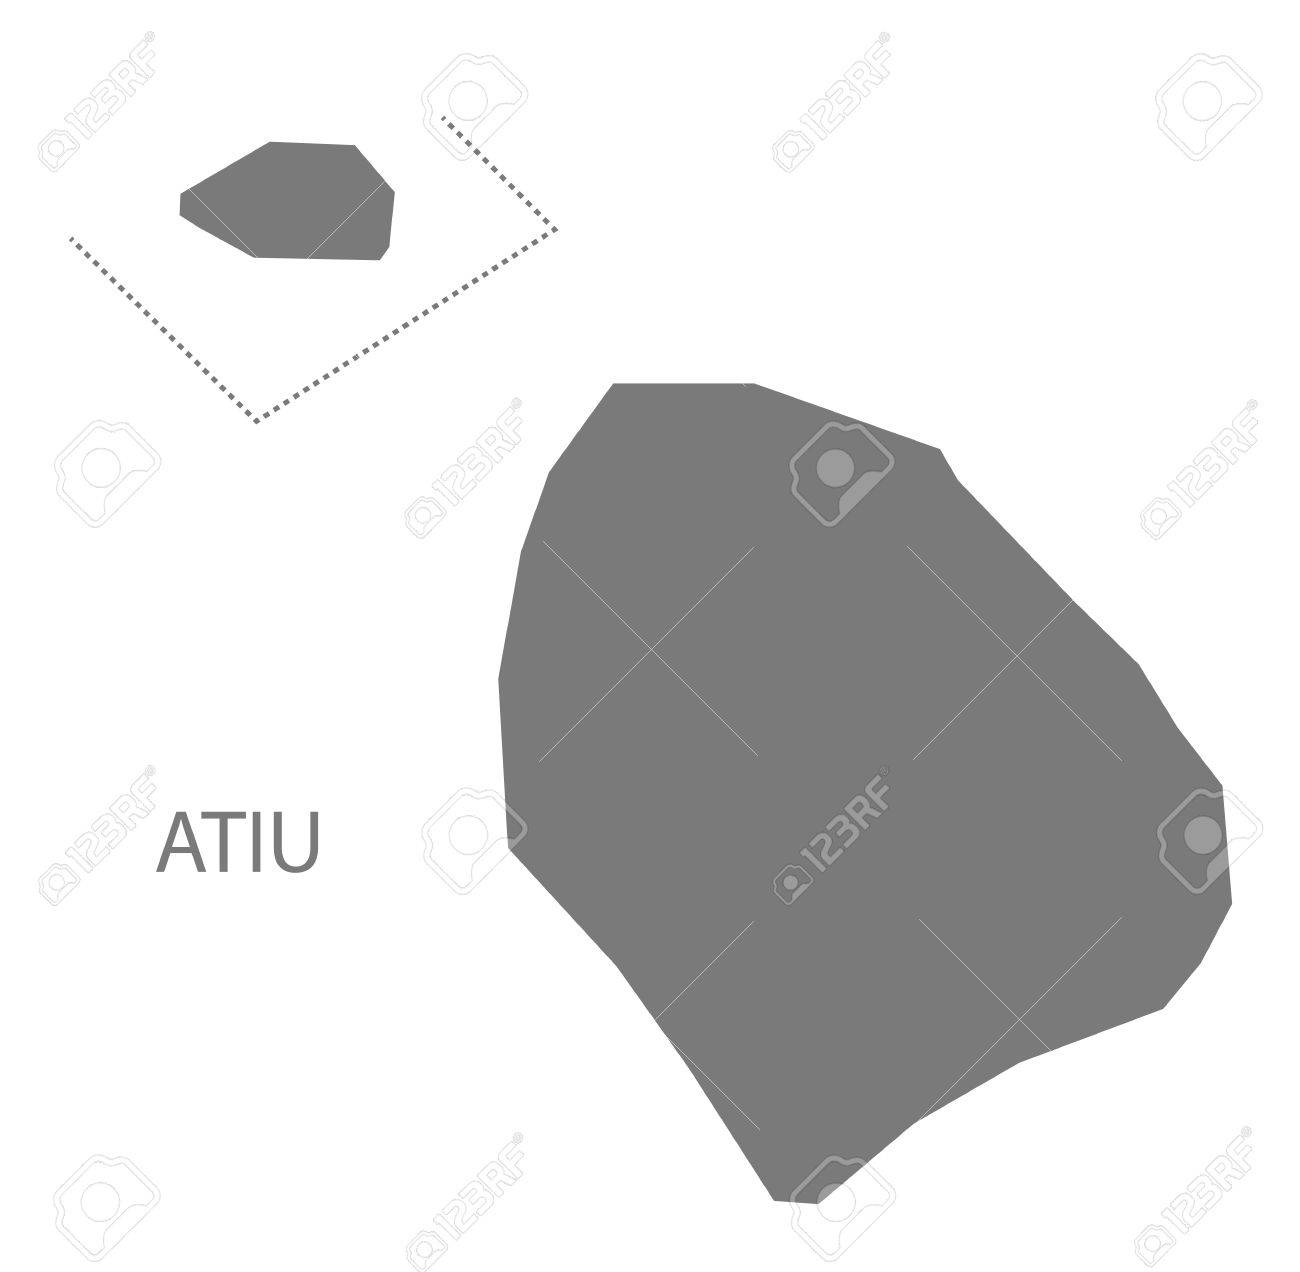 Atiu Cook Islands Map Grey Illustration Silhouette Royalty Free